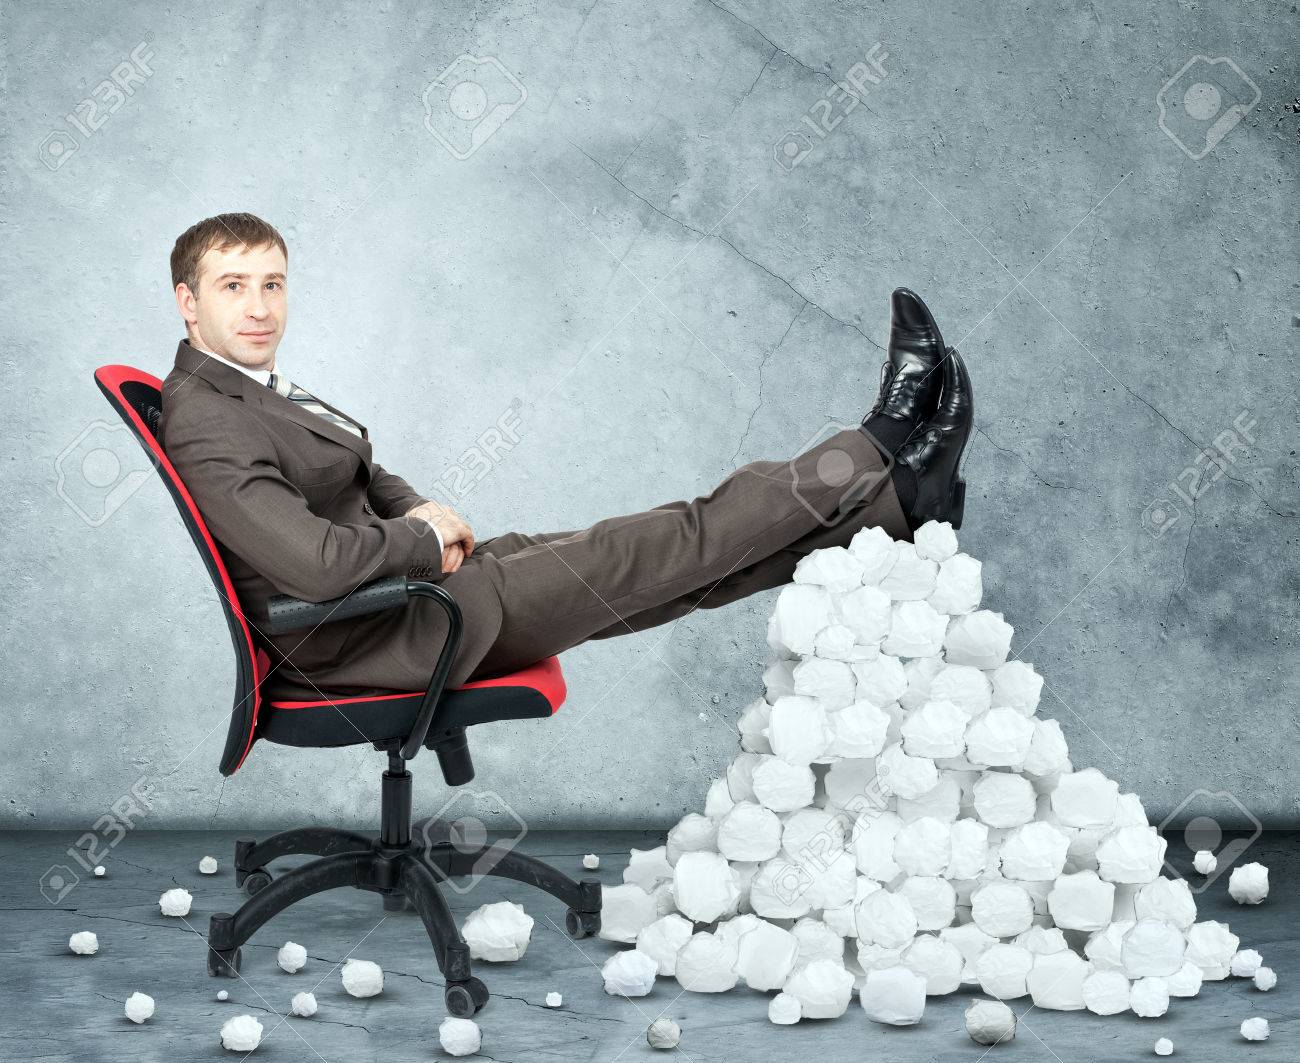 businessman sitting on chair and pile crumpled paper balls on